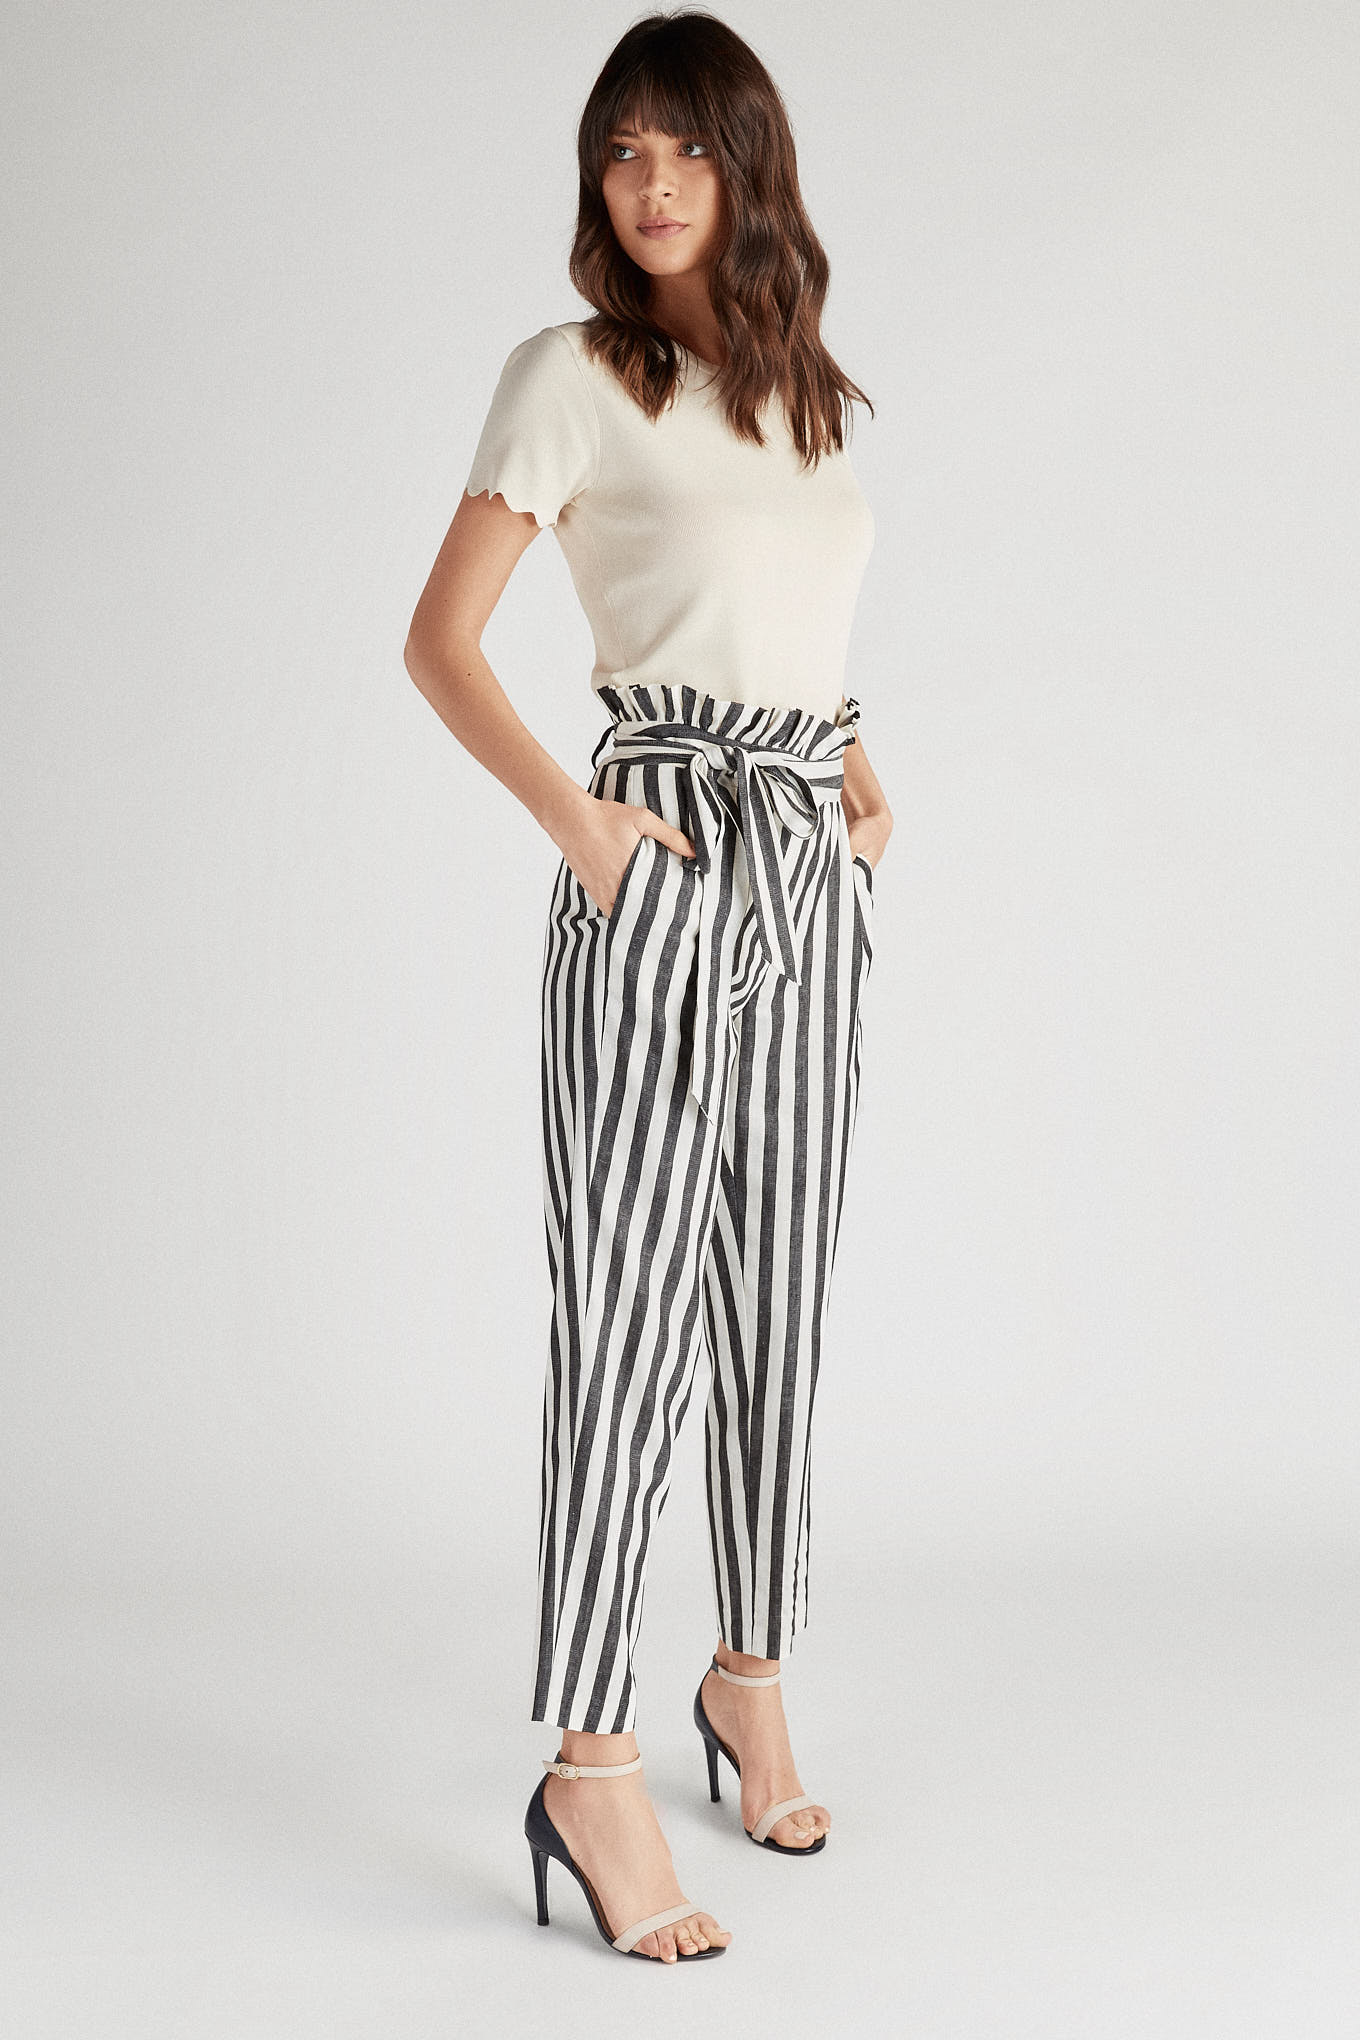 Trousers Stripes Fantasy Woman